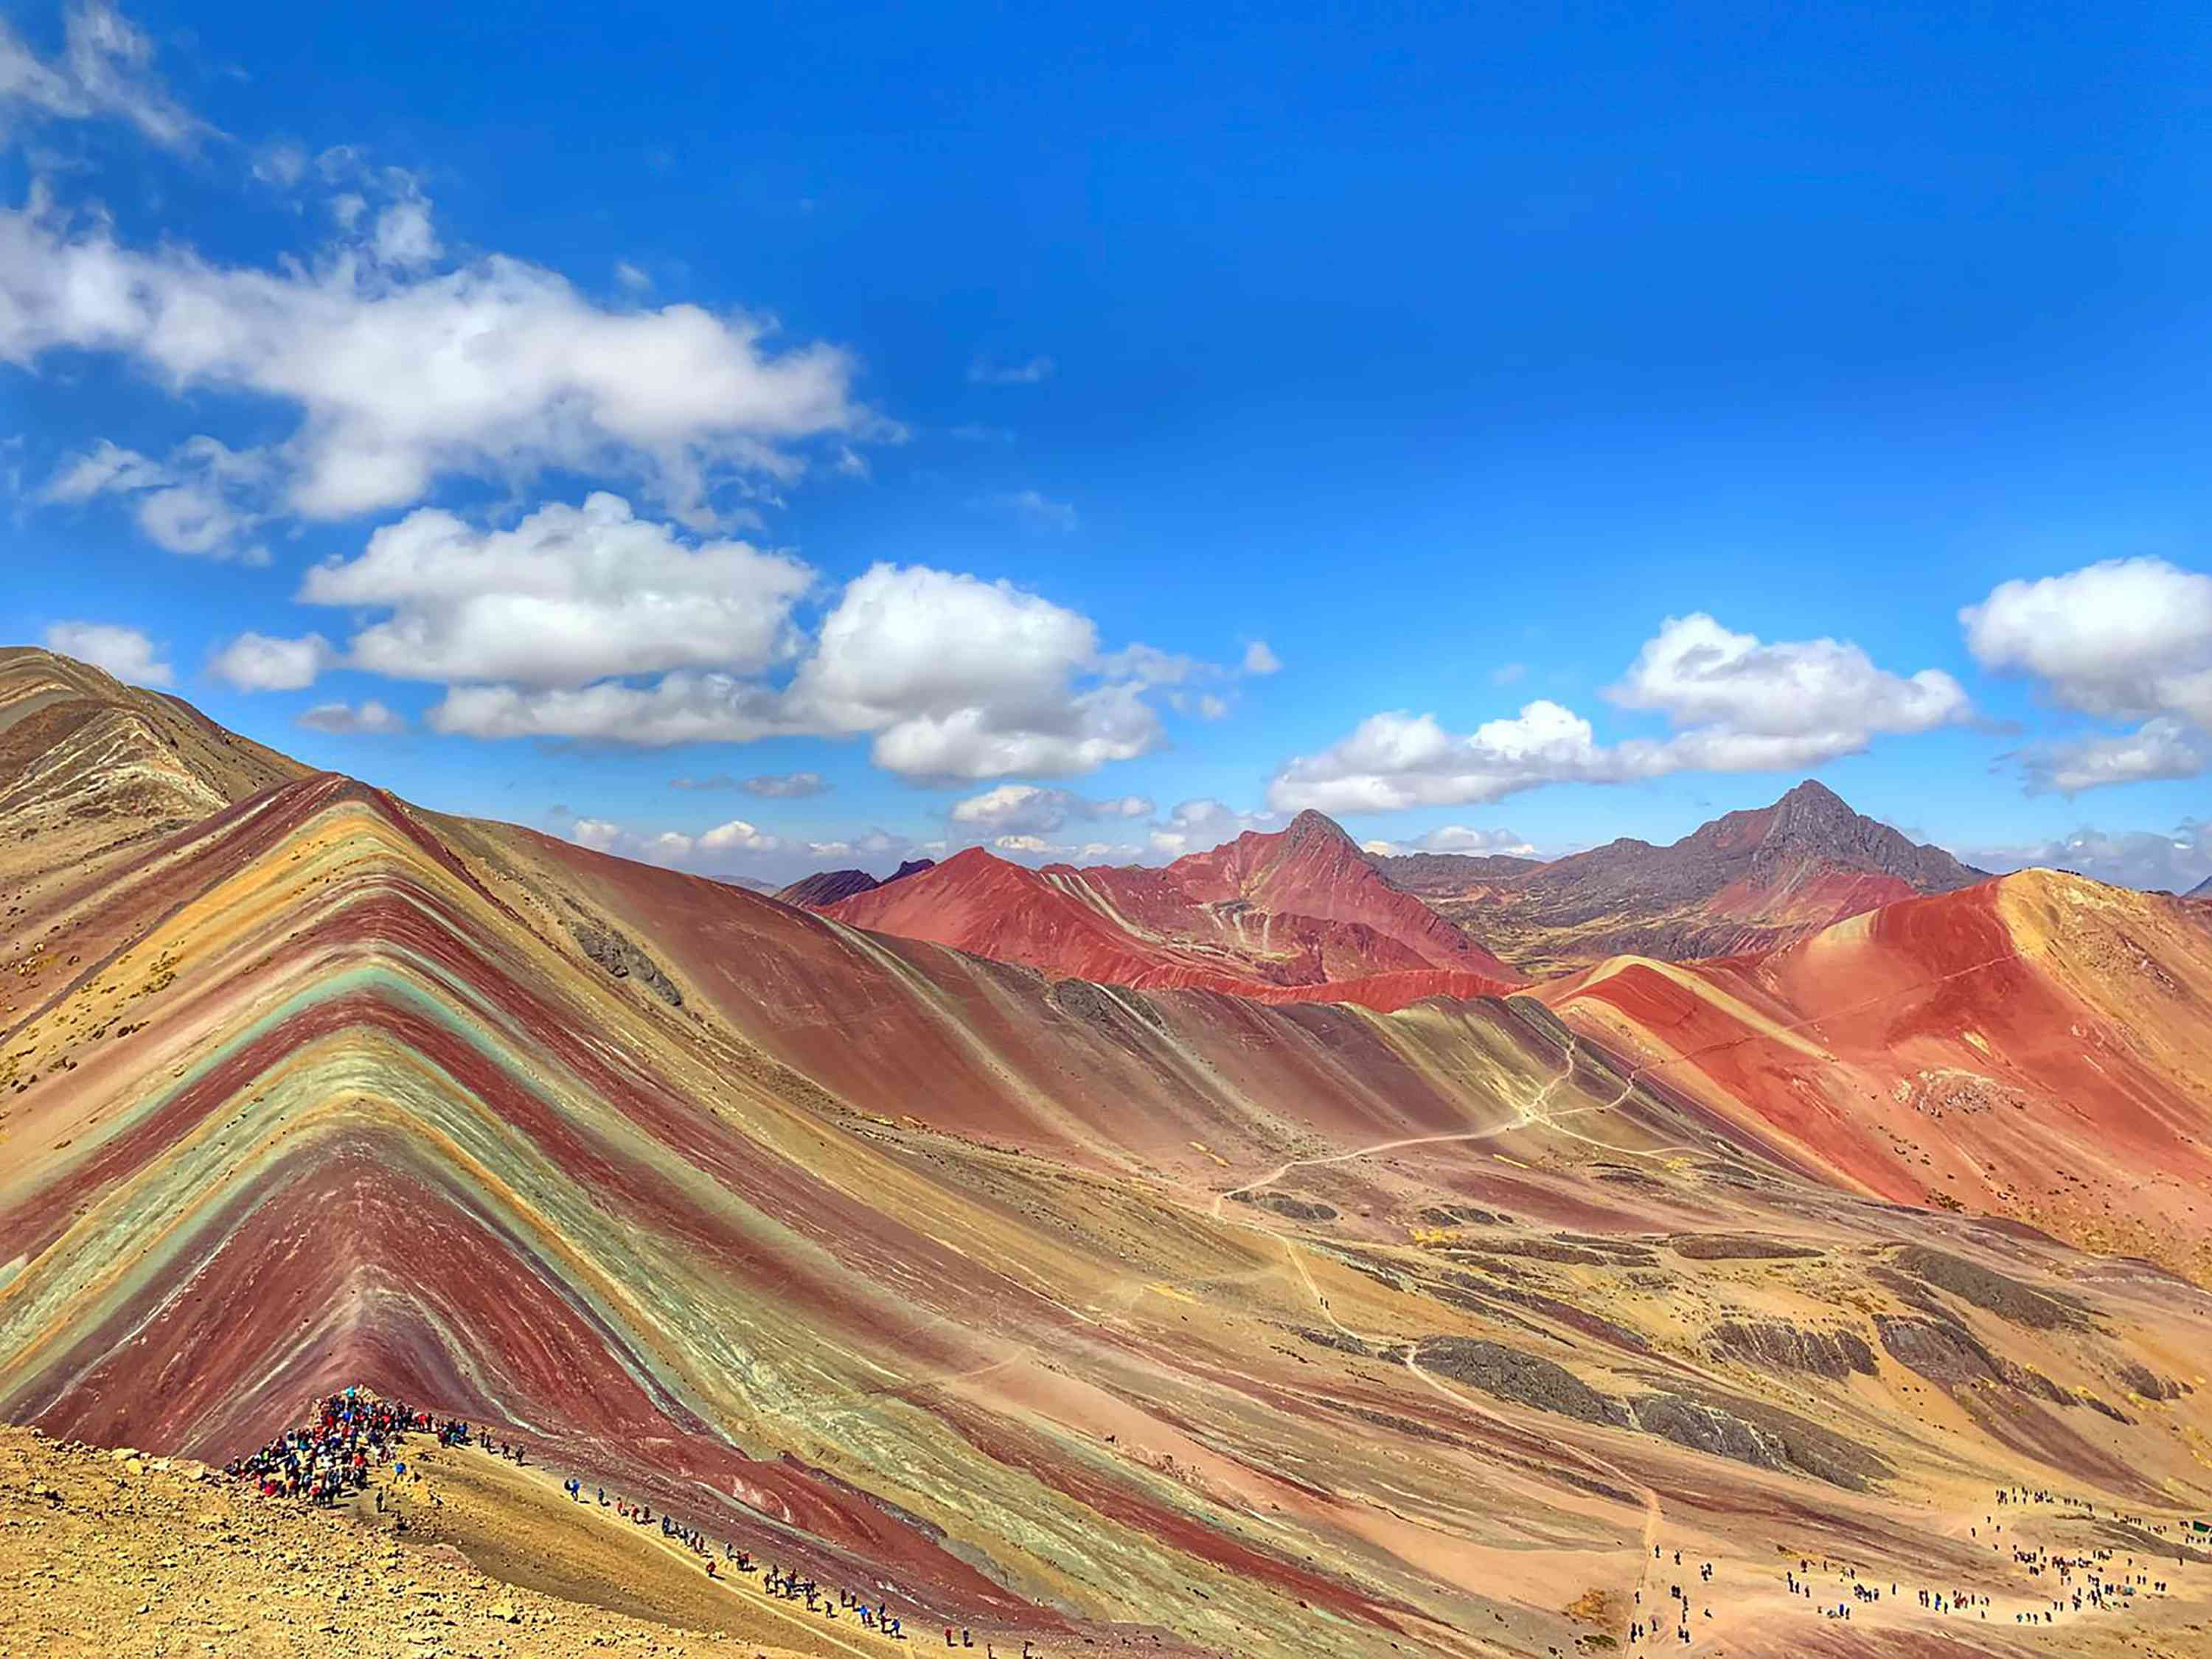 A multicolored mountain ridge on a sunny day with a line of tourists on a hiking trail